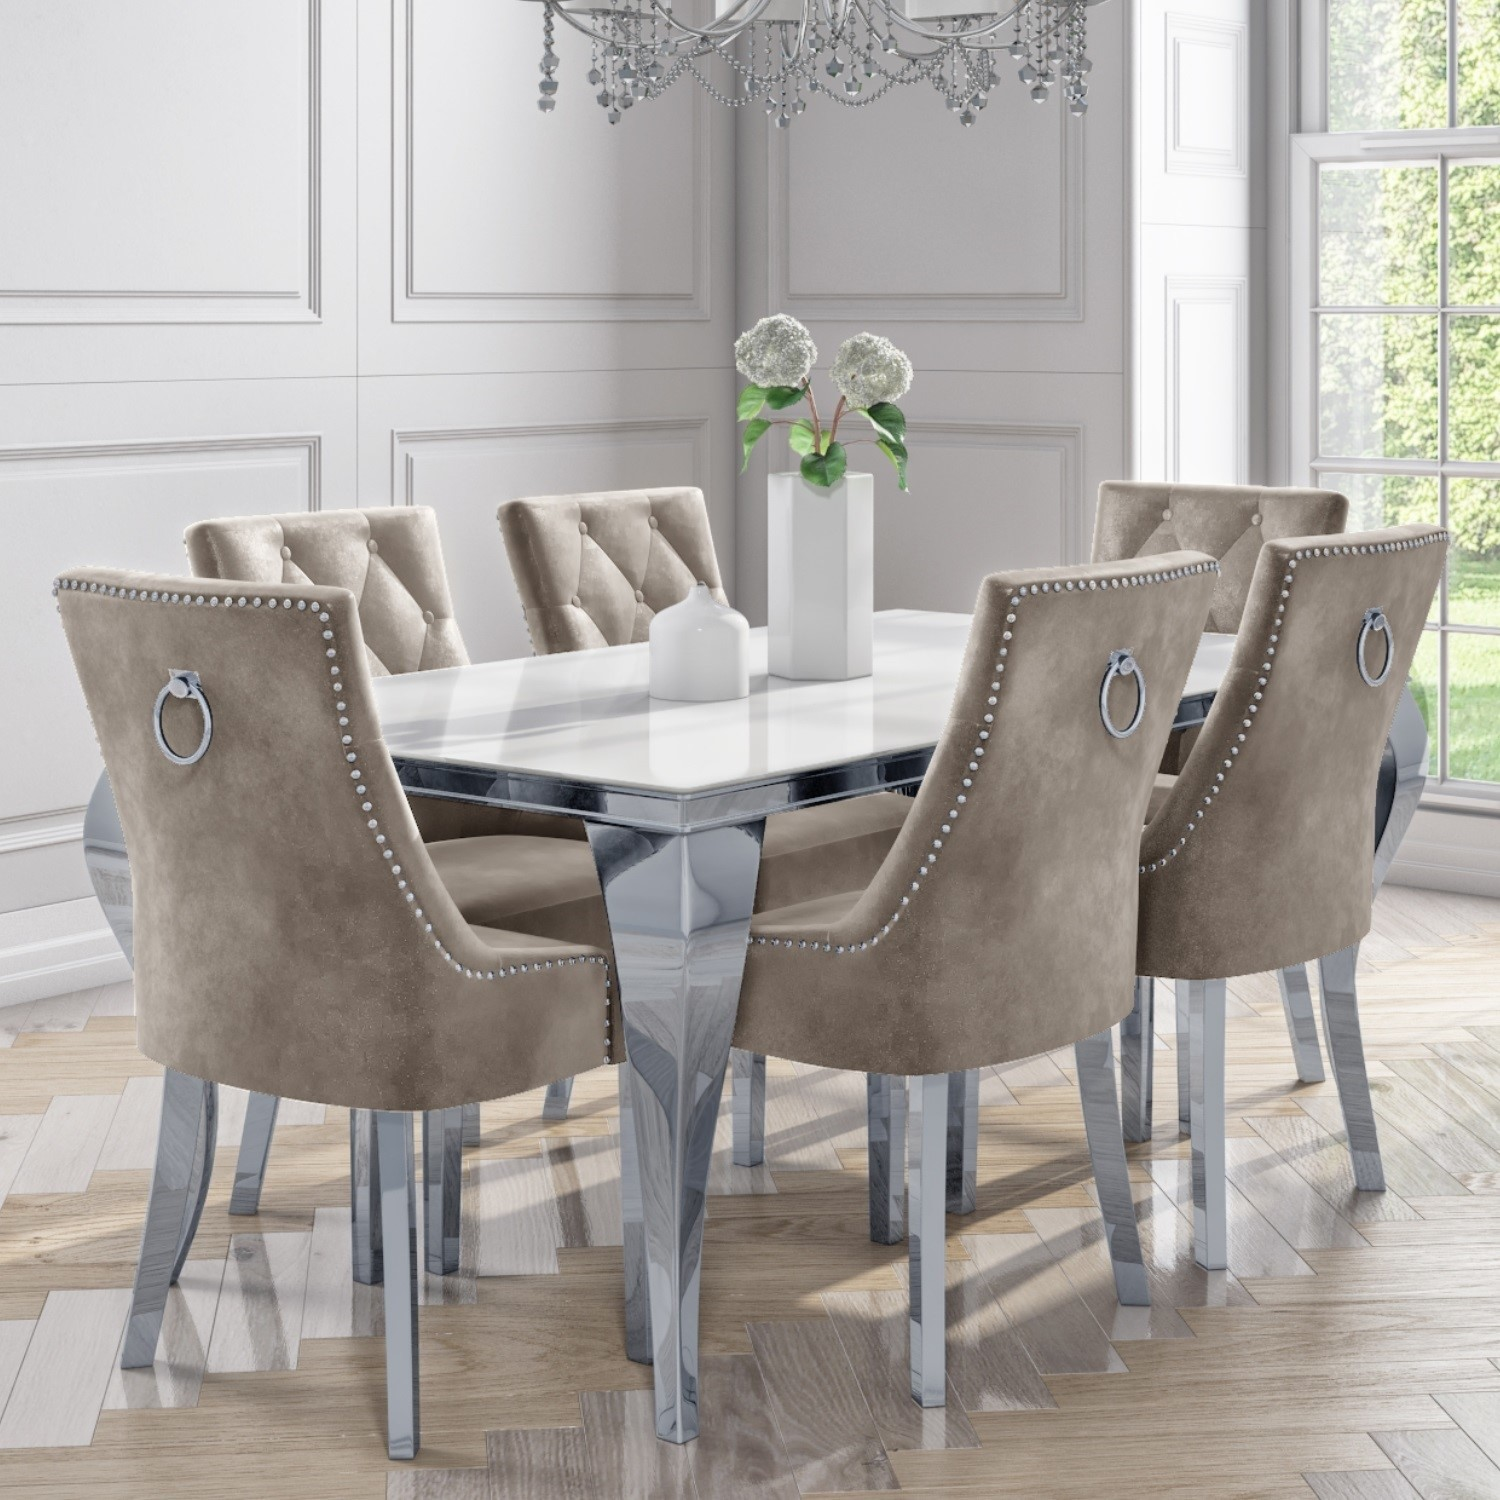 6 Seater Dining Set With White And Mirrored Table And Mink Velvet Chairs Jade Boutique Furniture123